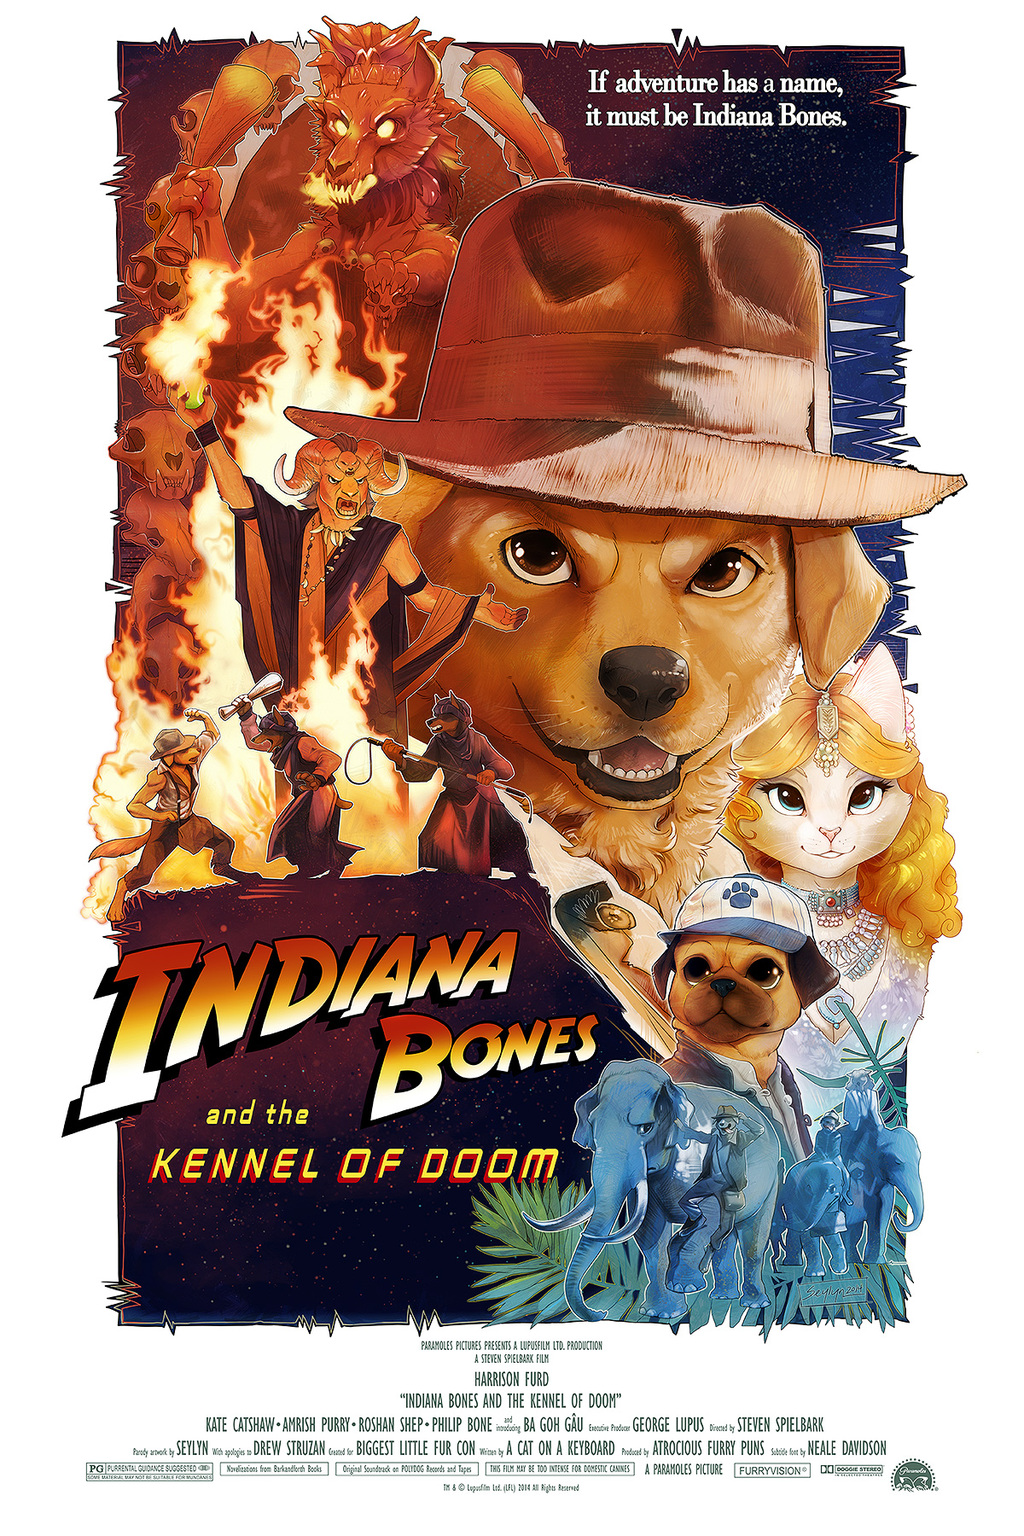 Indiana Bones and the Kennel of Doom [BLFC Poster]